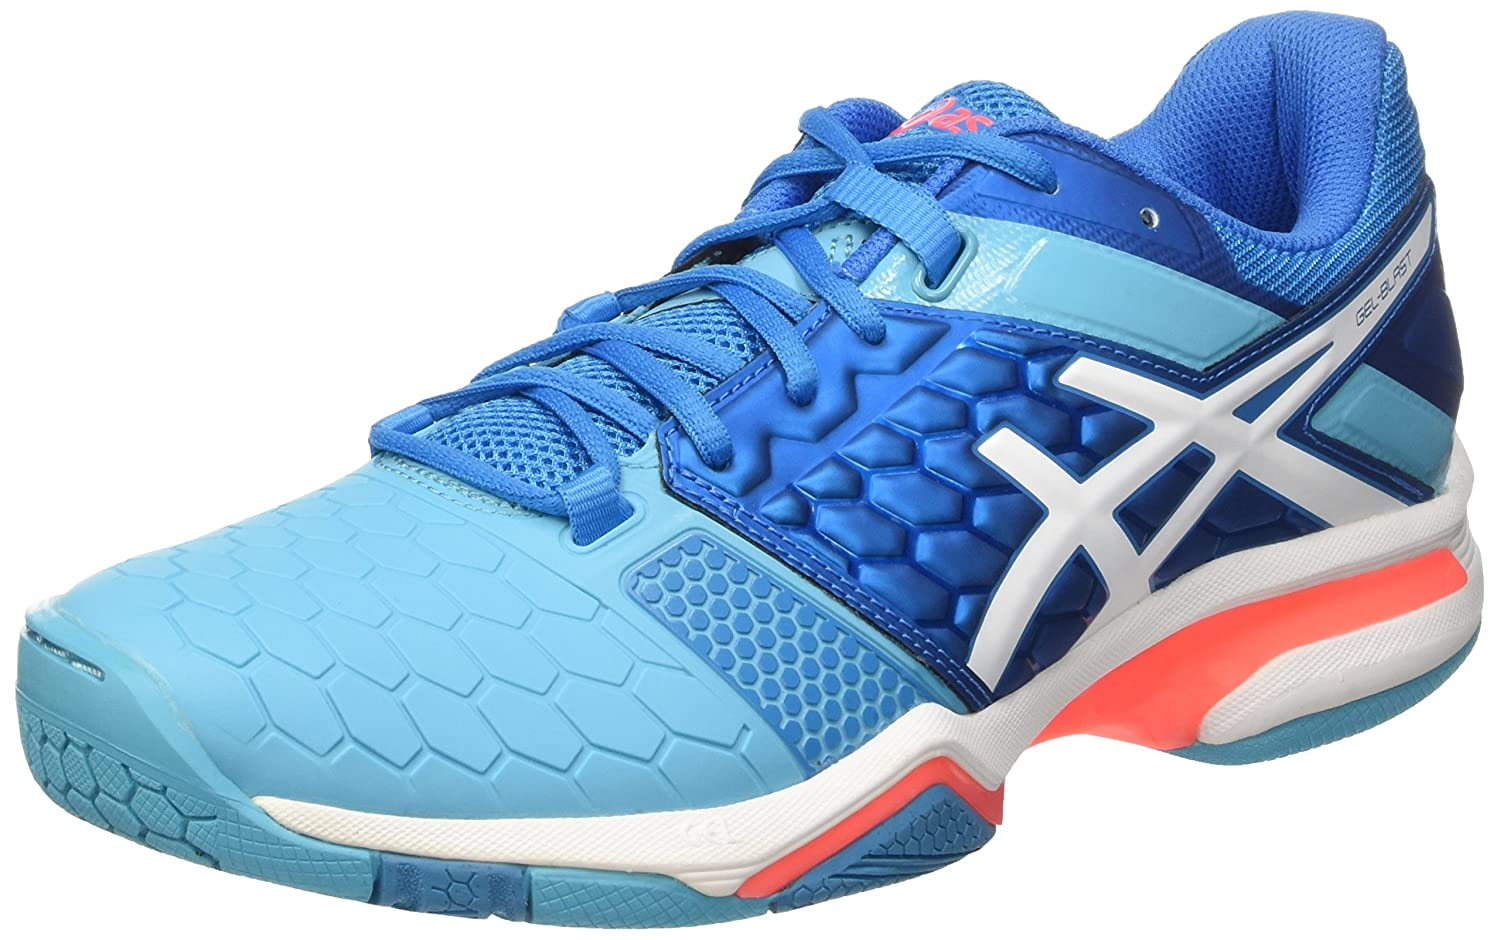 Asics Gel-Blast 7 W, Zapatillas de Balonmano Para Mujer, Blu (Blue Jewel/White/Flash Coral), 39.5 EU E658Y 4301